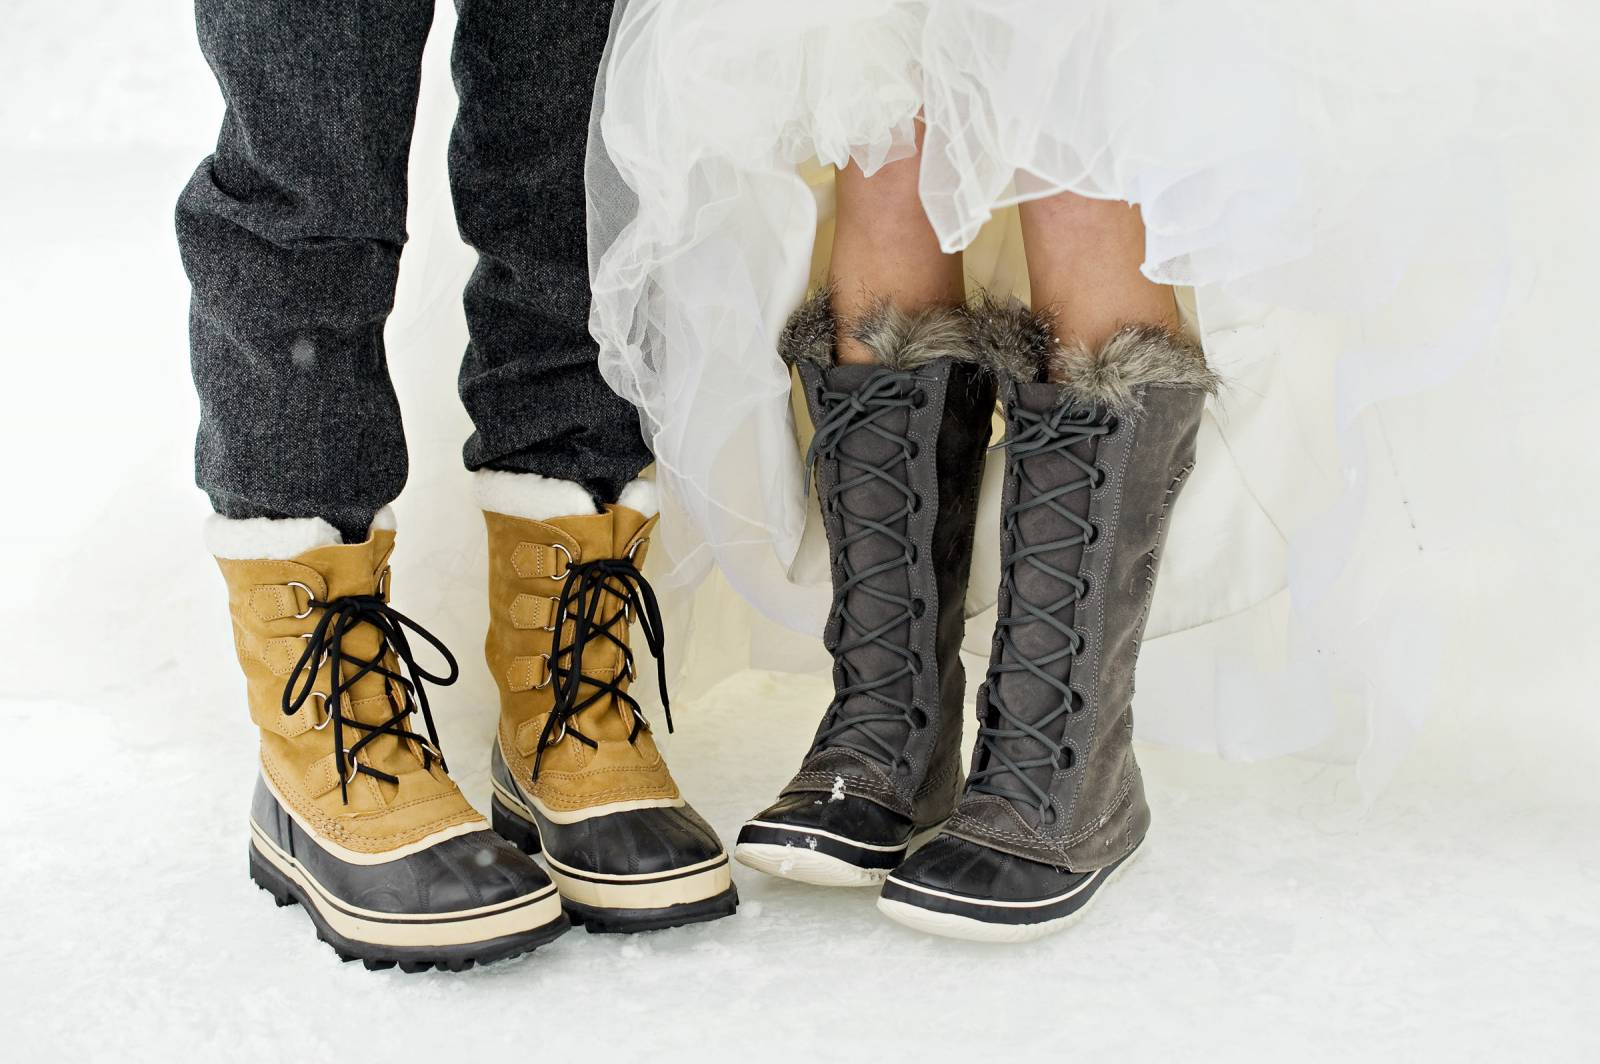 If You Are Asking Your Wedding Party To Step Outside For Winter Photos Then Ask Them Bring Cute Boots And Thermal Leggings With